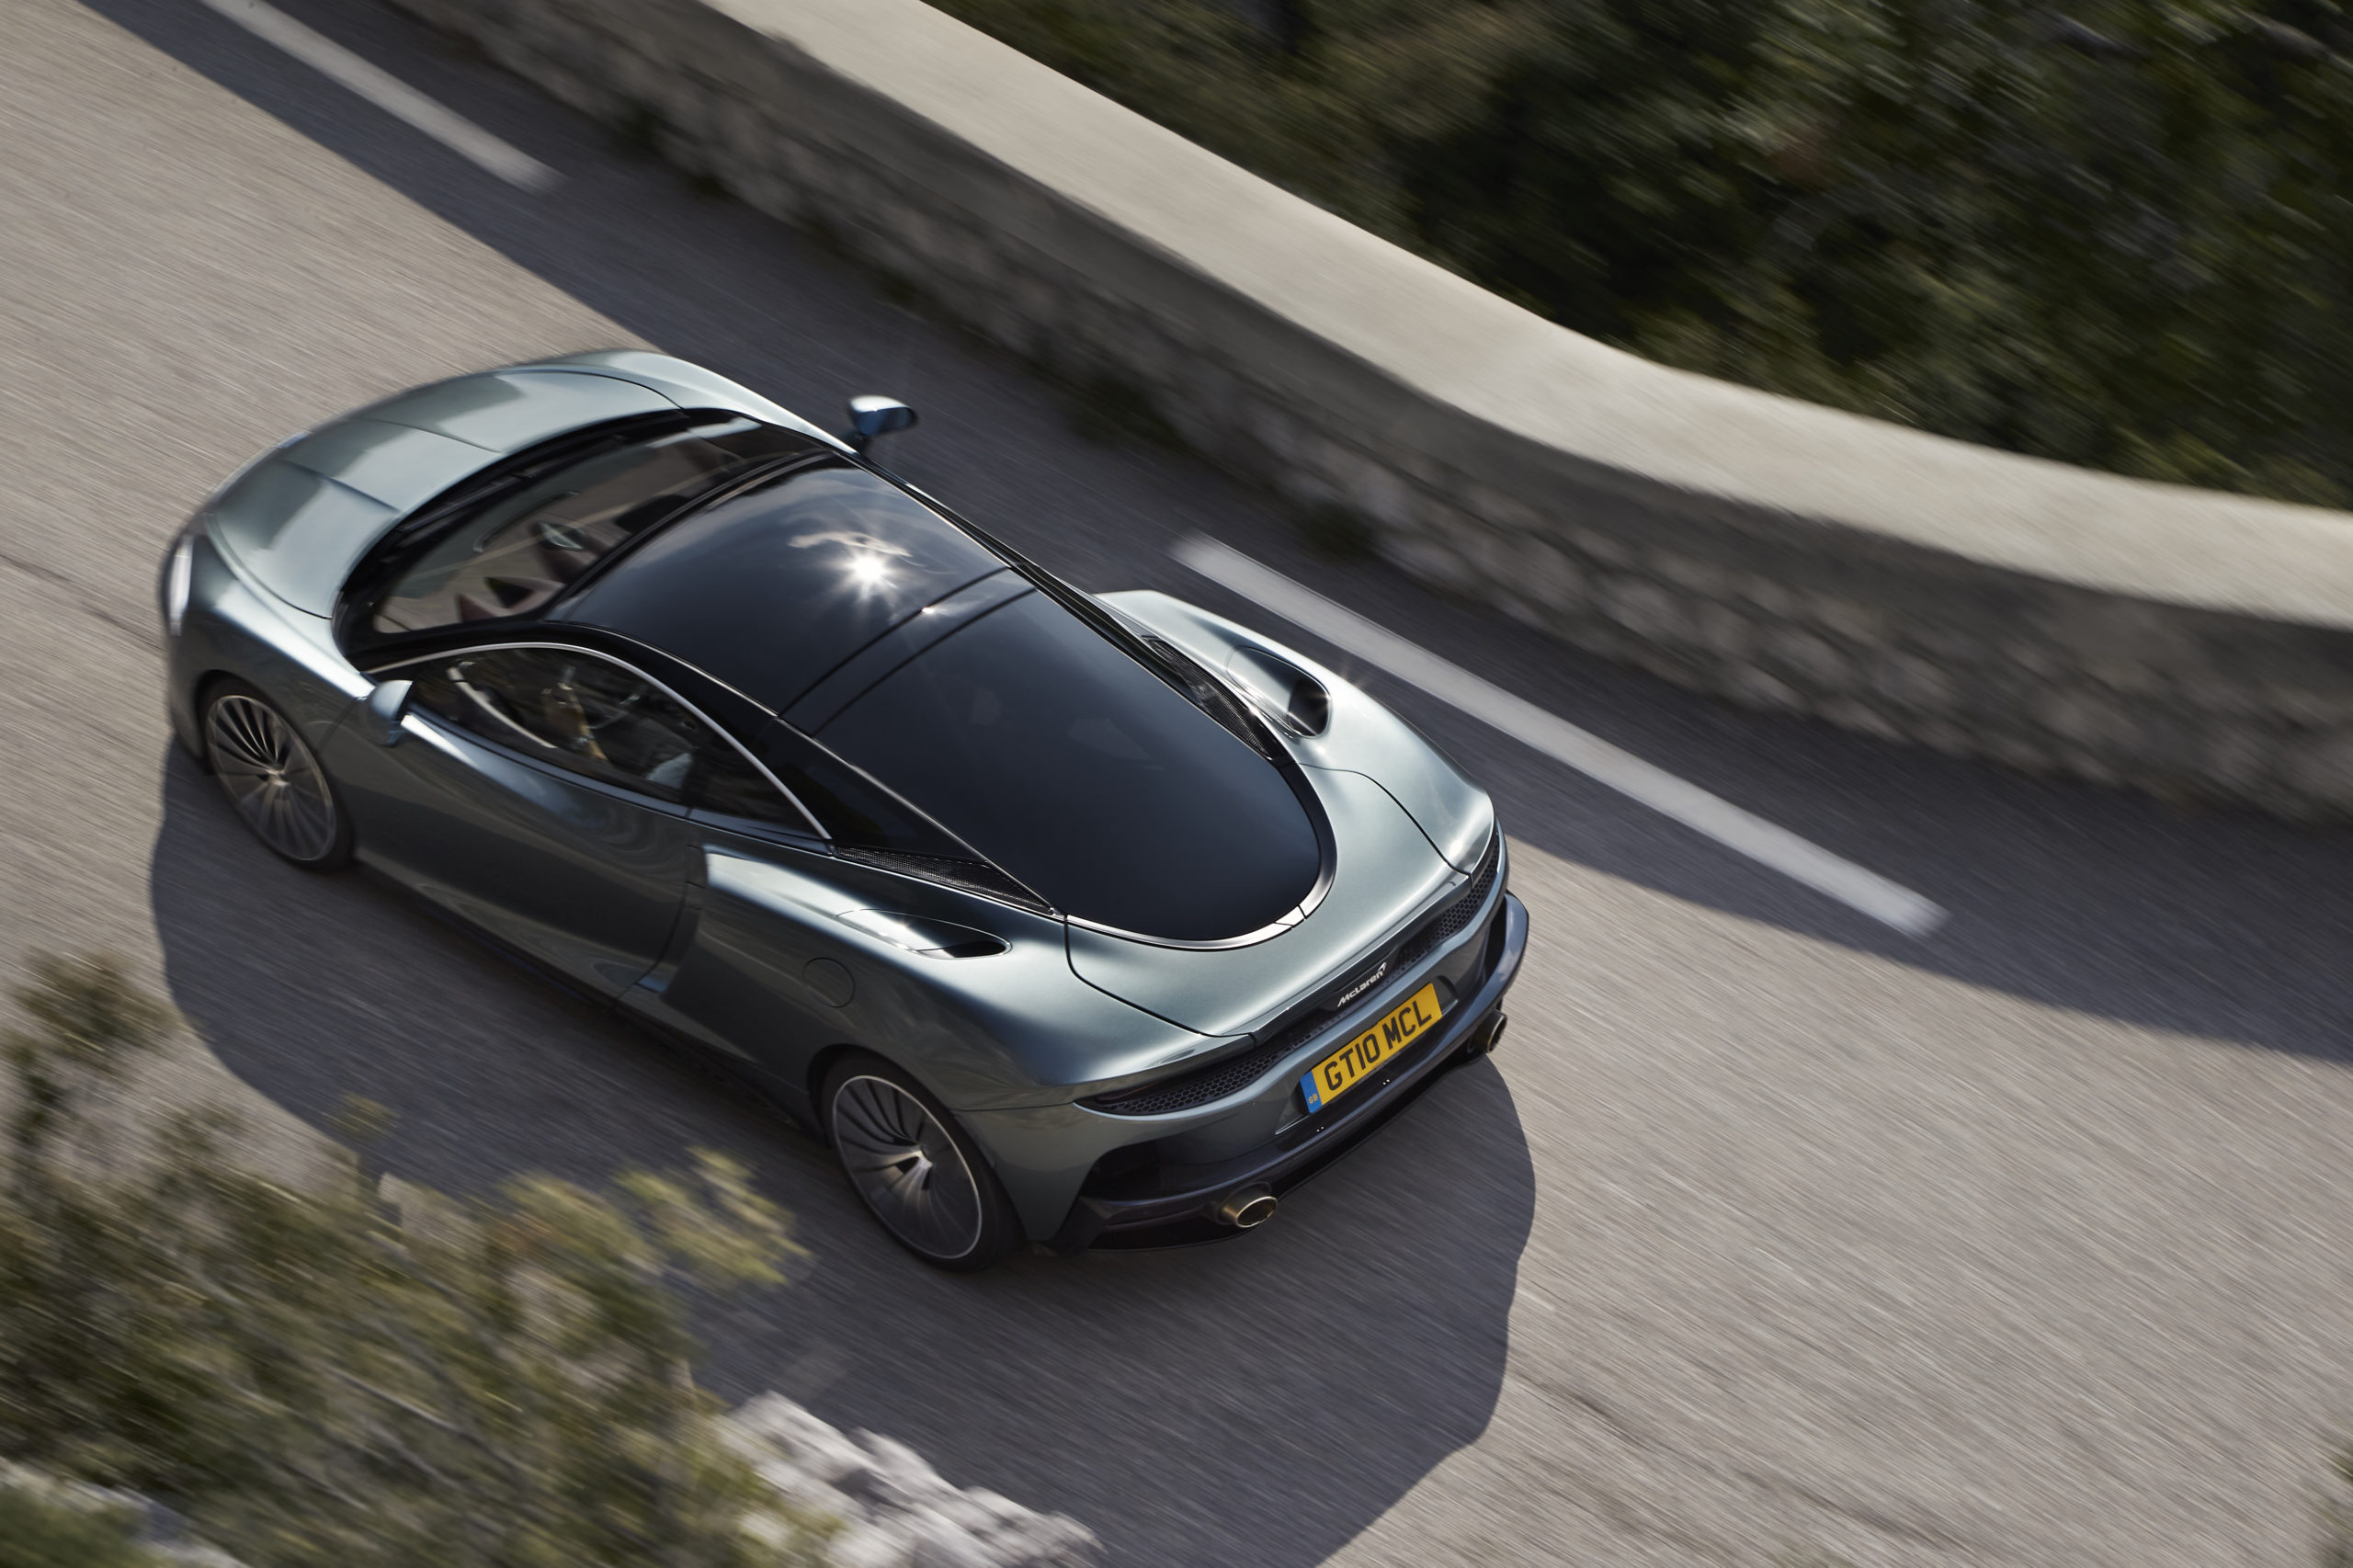 McClaren's new GT: A reinvention of the grand tourer or 'just a supercar with the wrong badge?'